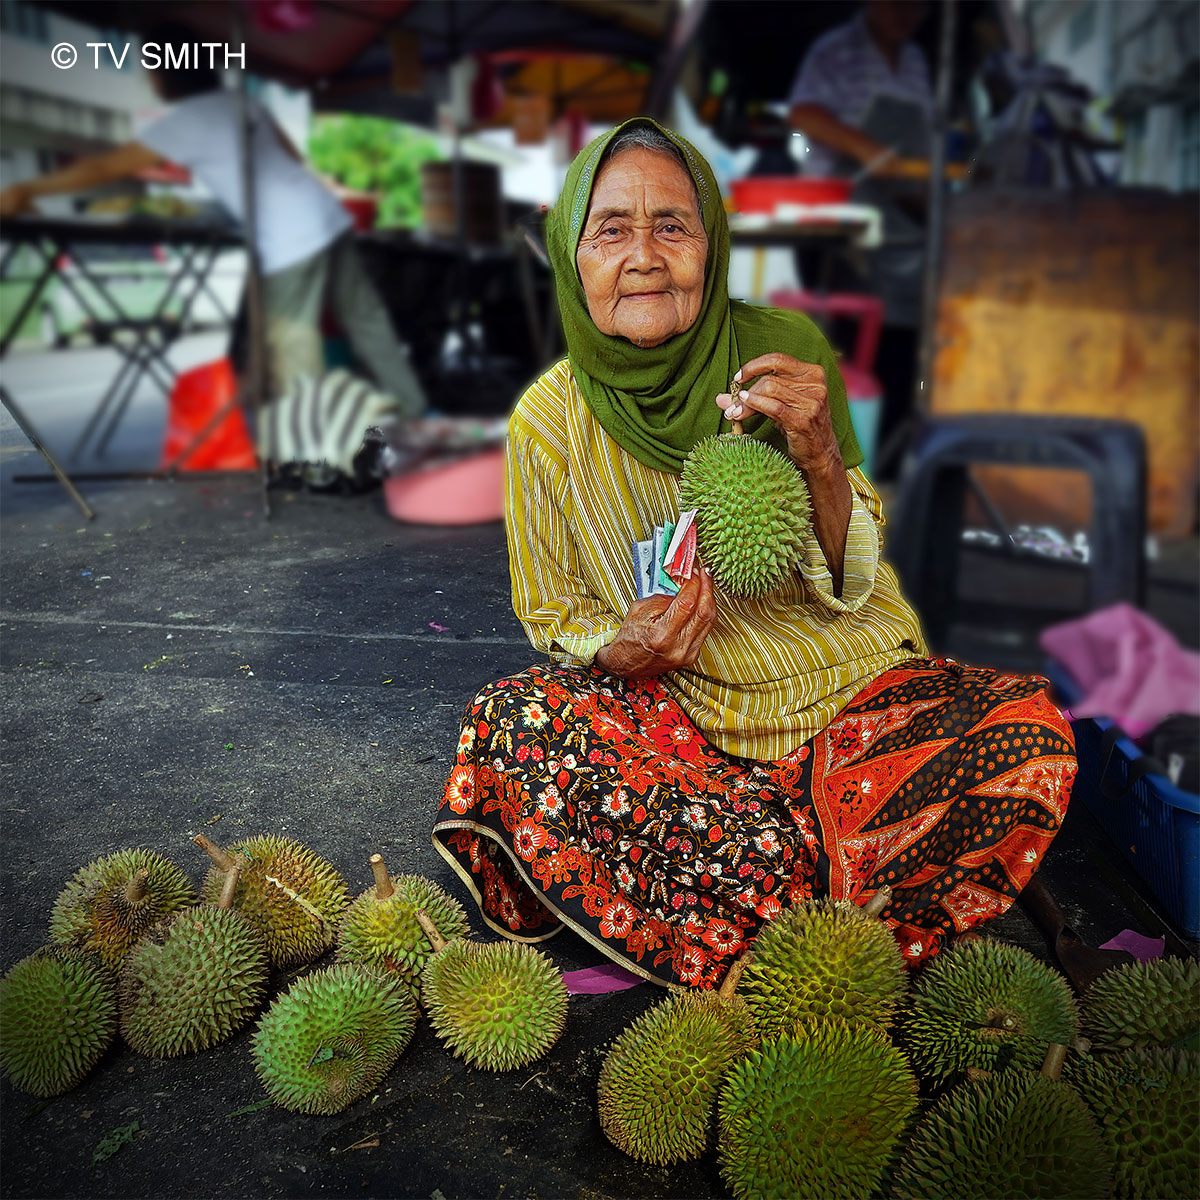 The Cheerful Durian Seller